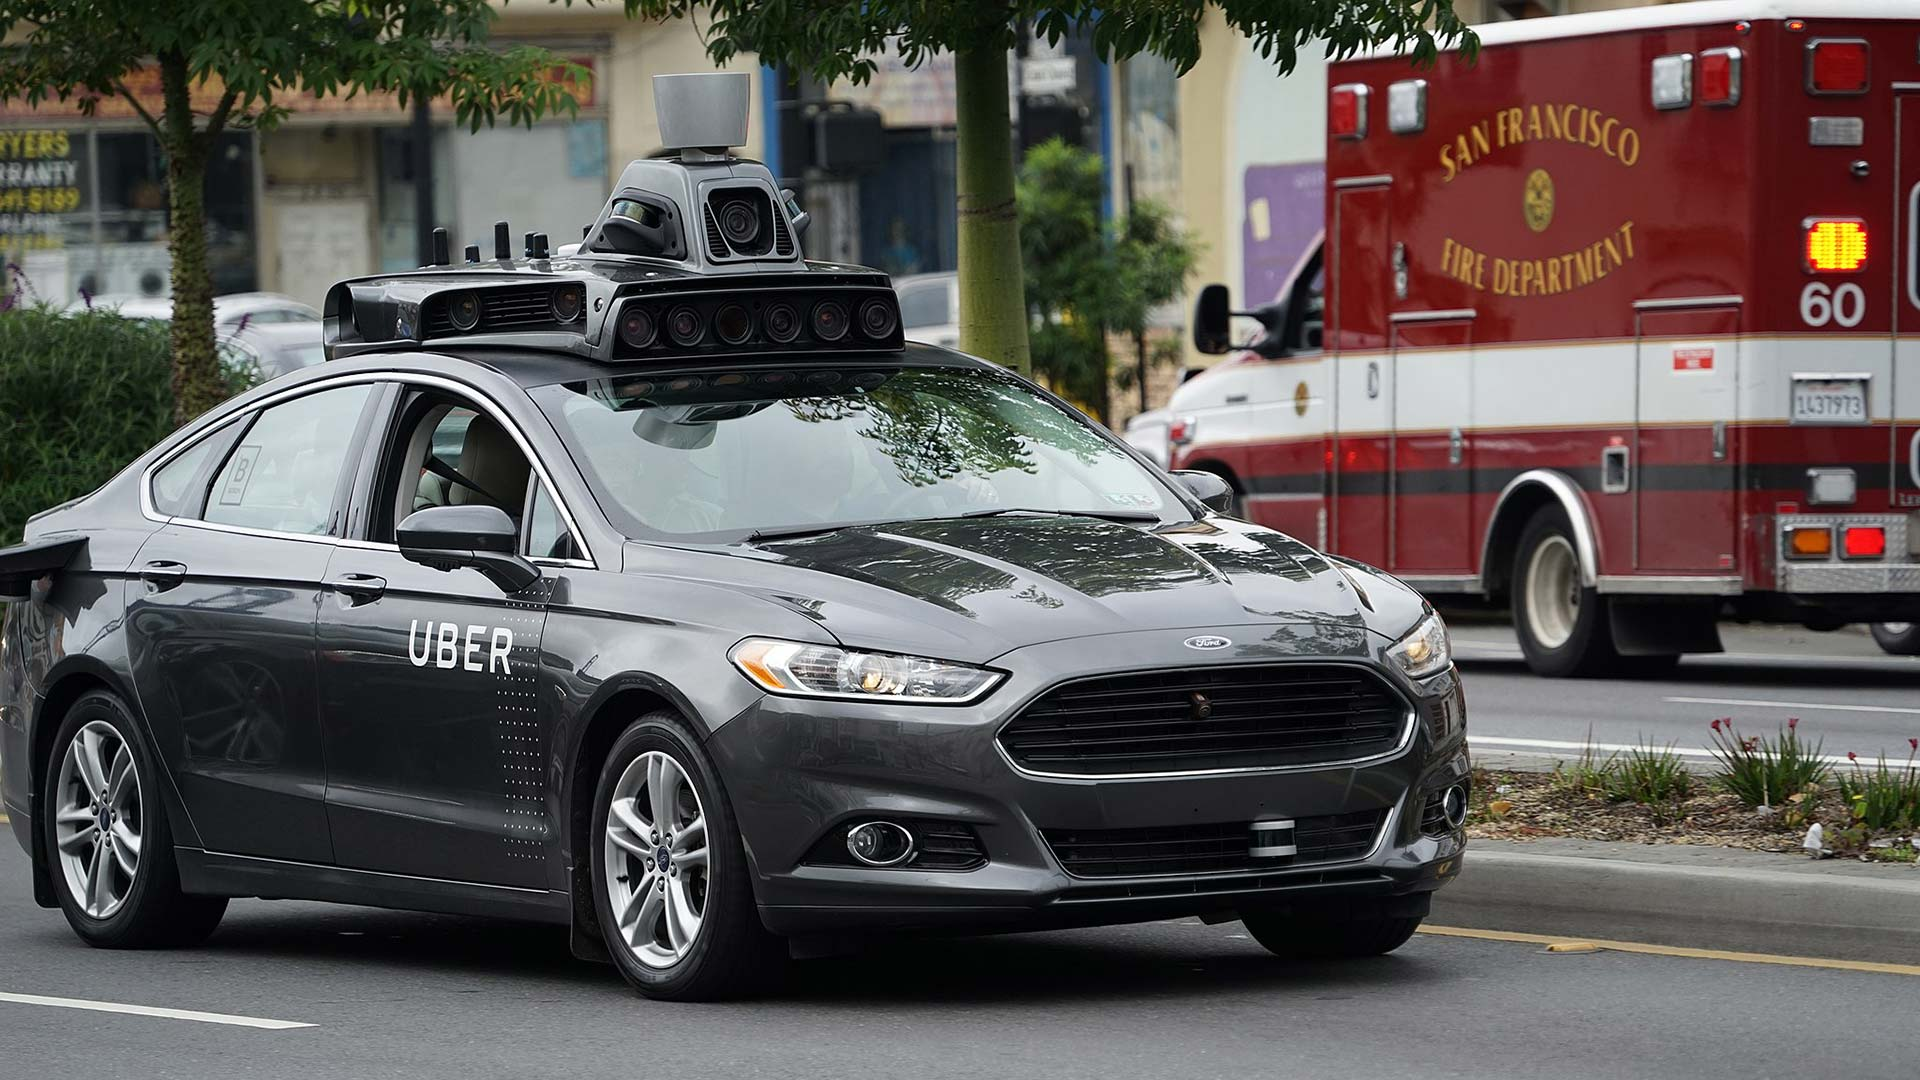 Uber self driving car hero